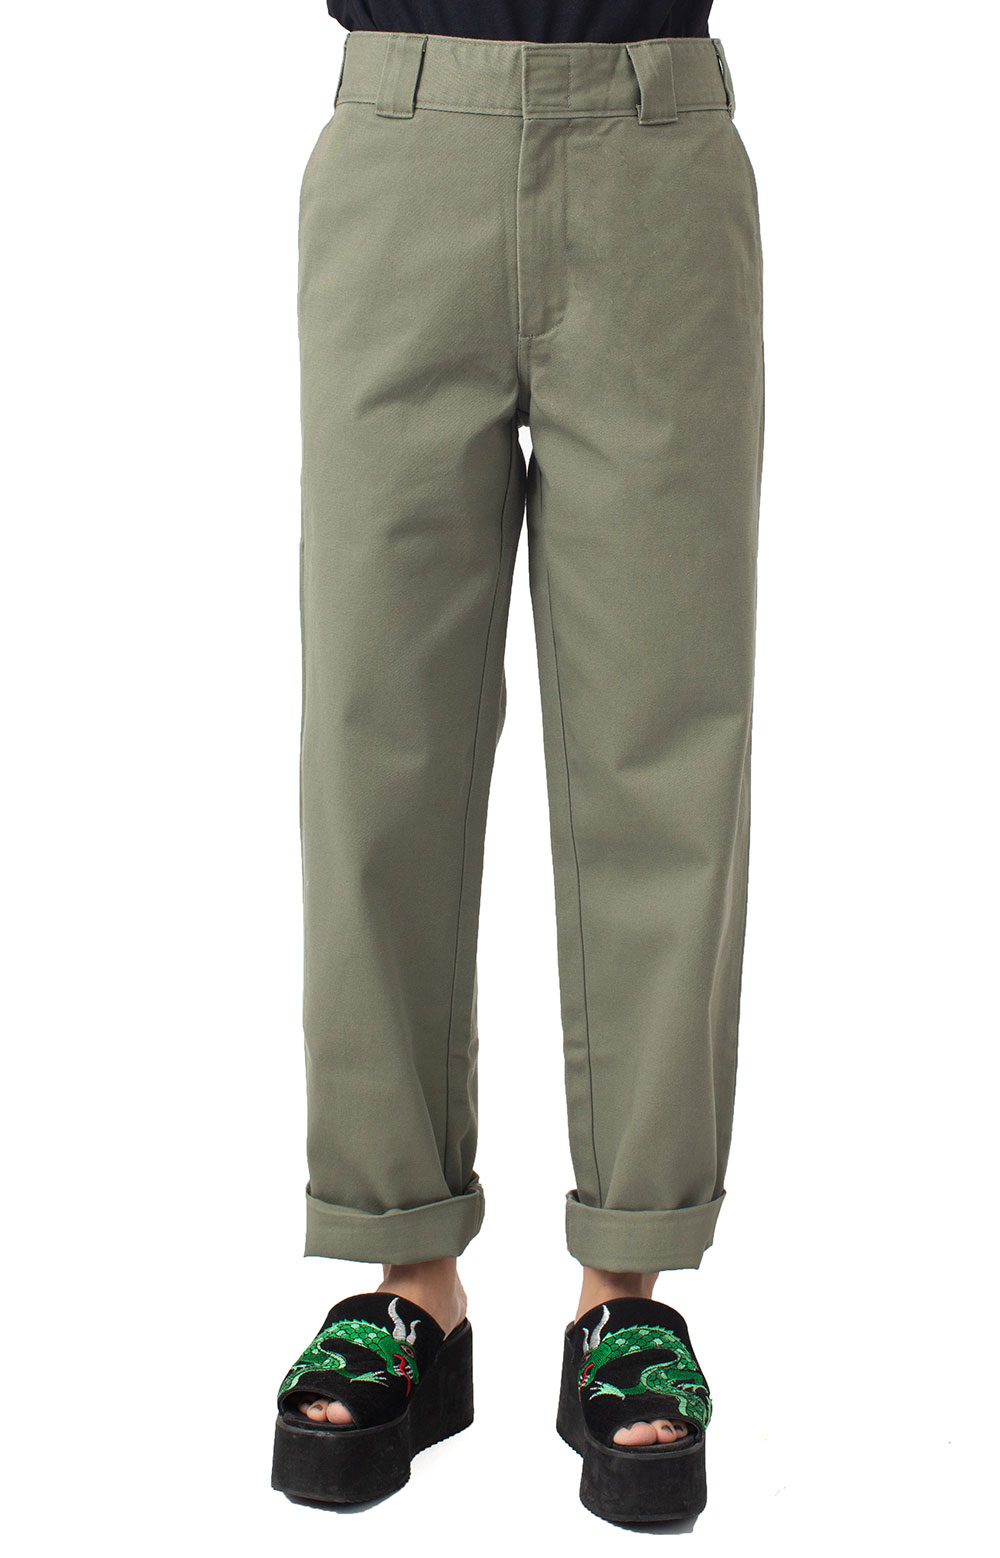 Work Crop Roll Hem Relaxed Fit Pant - Olive 3